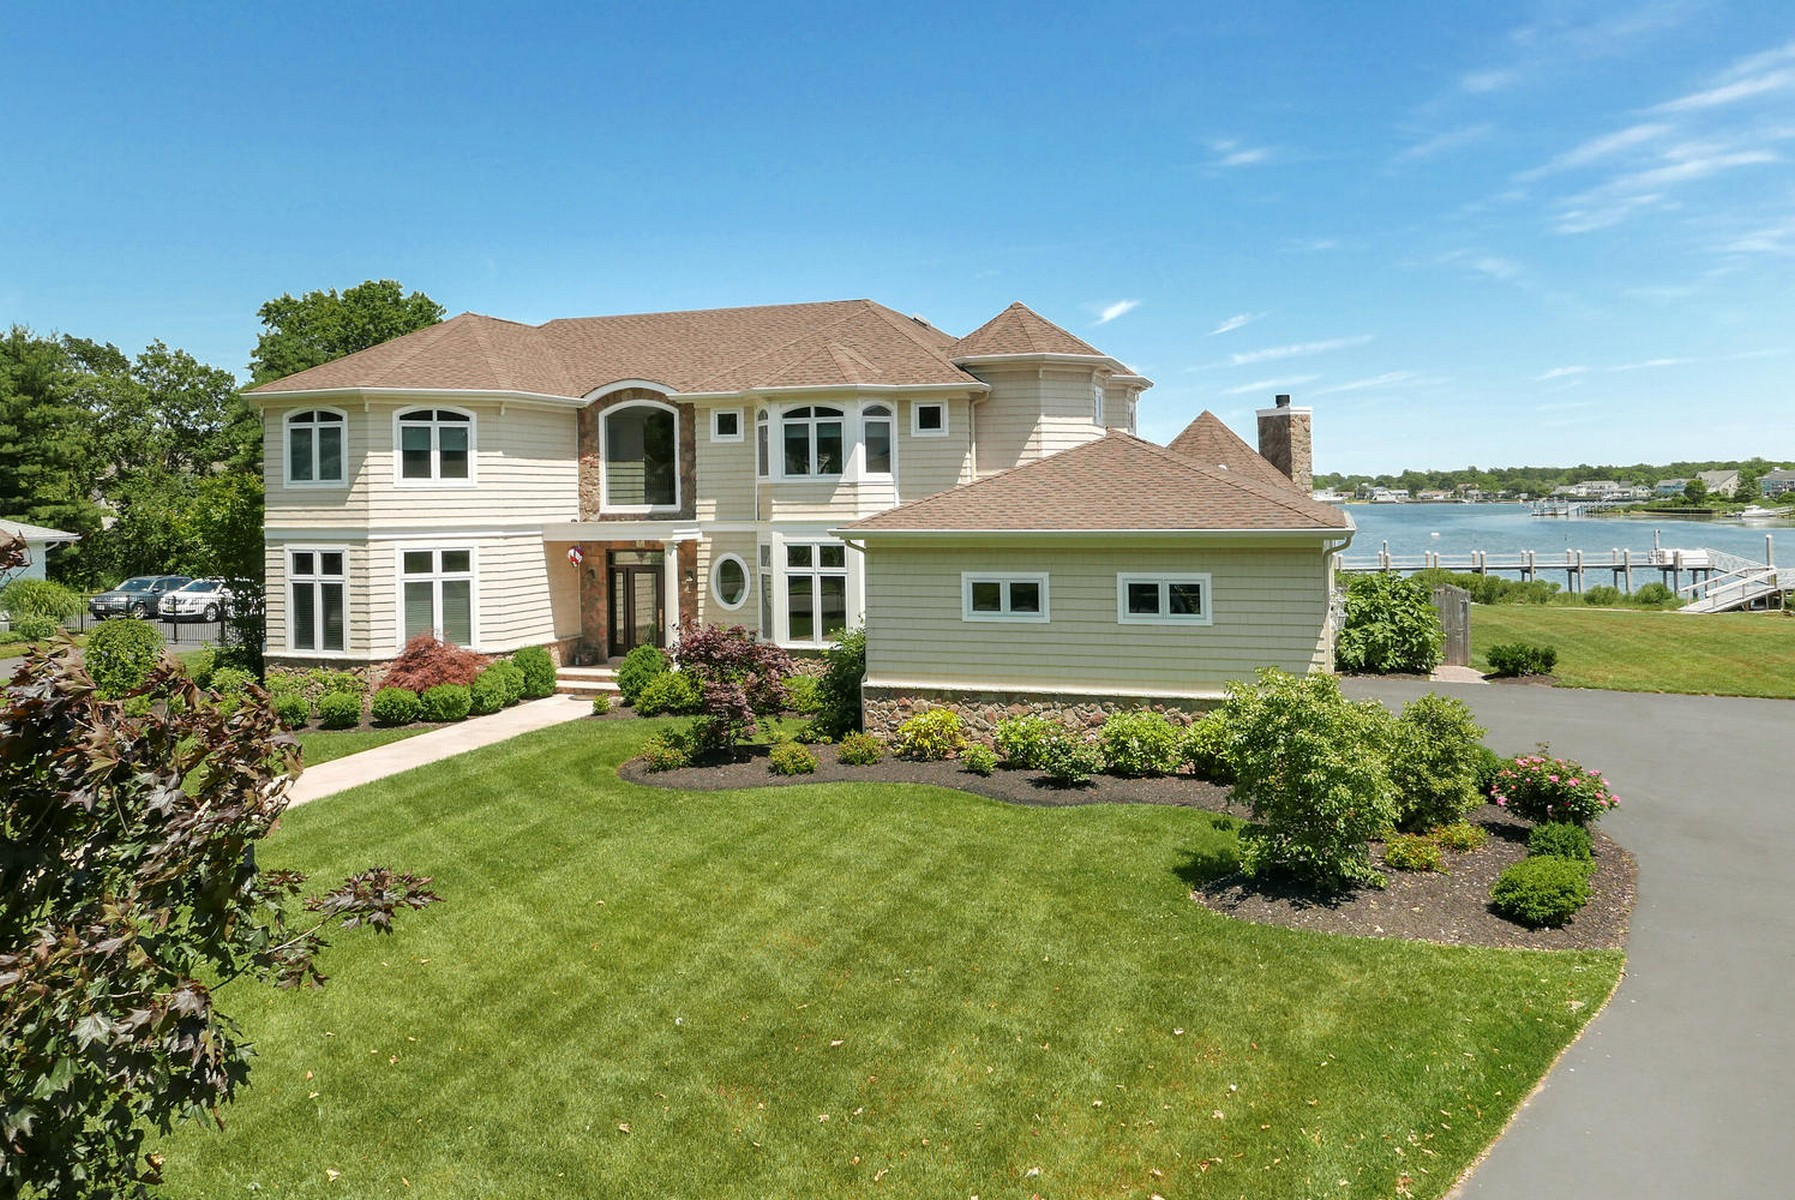 Casa Unifamiliar por un Venta en Sophisticated Riverfront Home on the Shrewsbury River 74 Rivers Edge Dr. Little Silver, Nueva Jersey, 07739 Estados Unidos